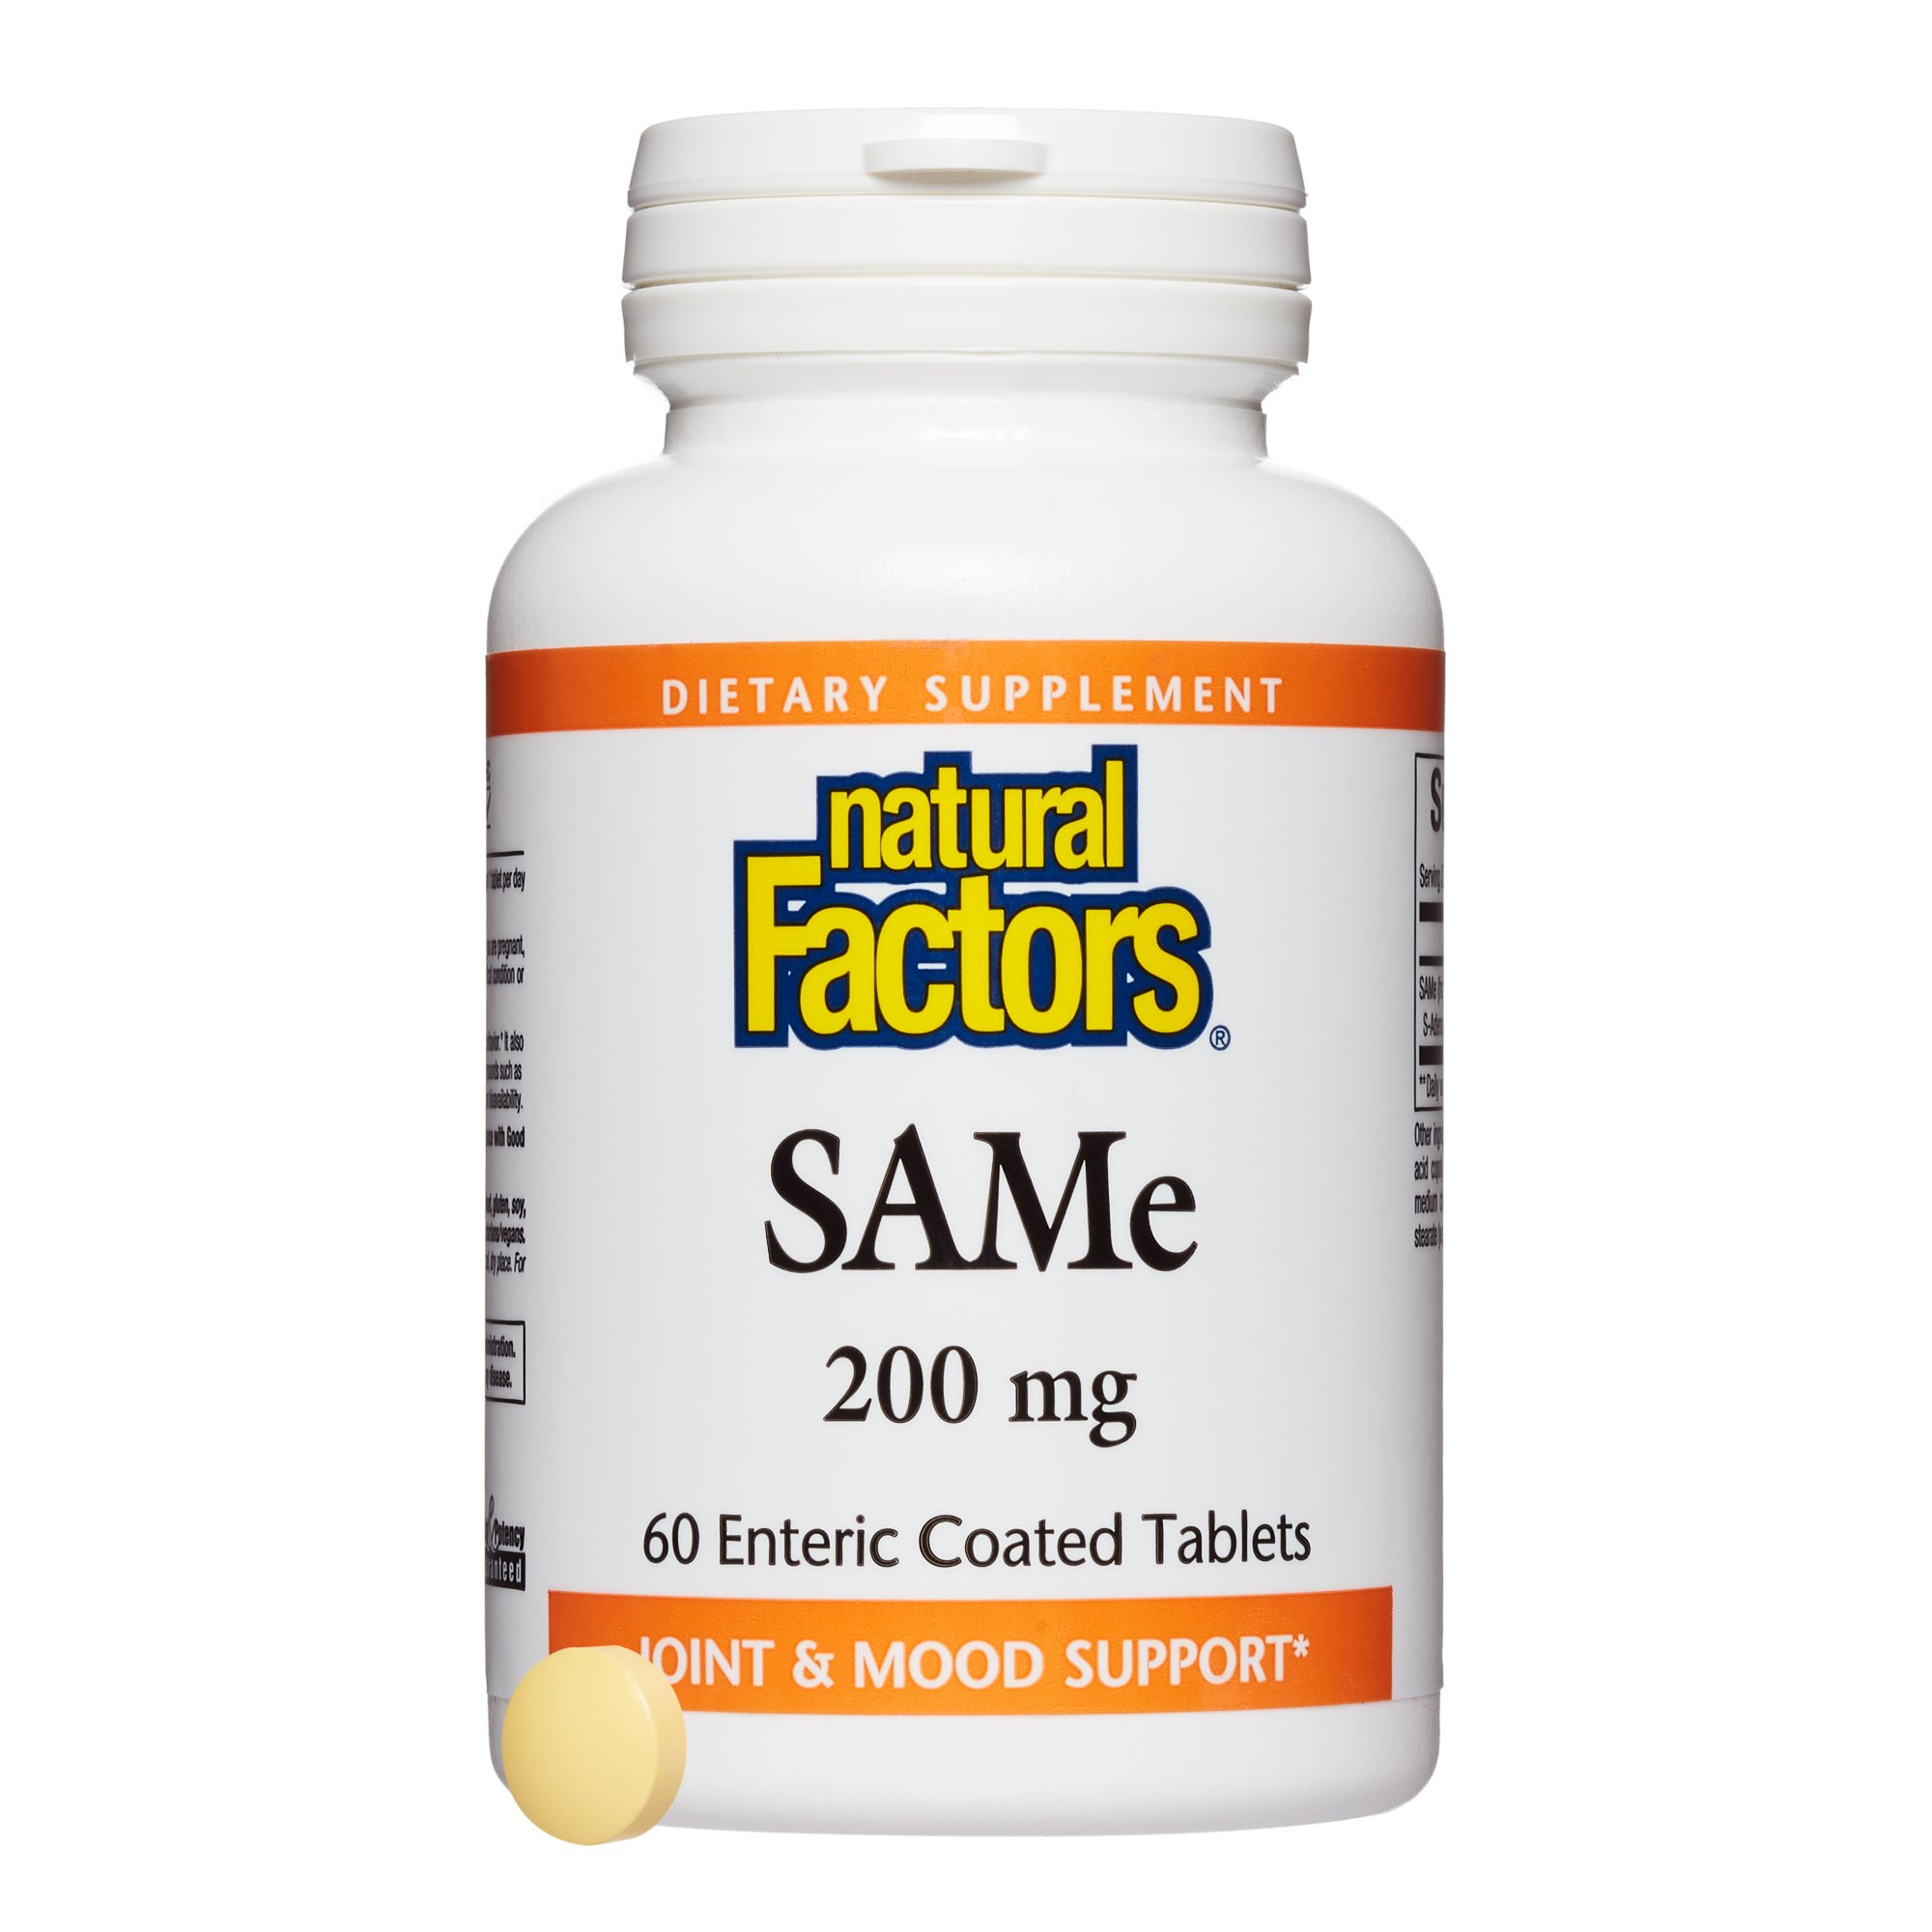 Natural Factors, SAMe 200 mg, Helps Elevate Mood and Improve Joint Health, 60 tablets (60 servings) by Natural Factors